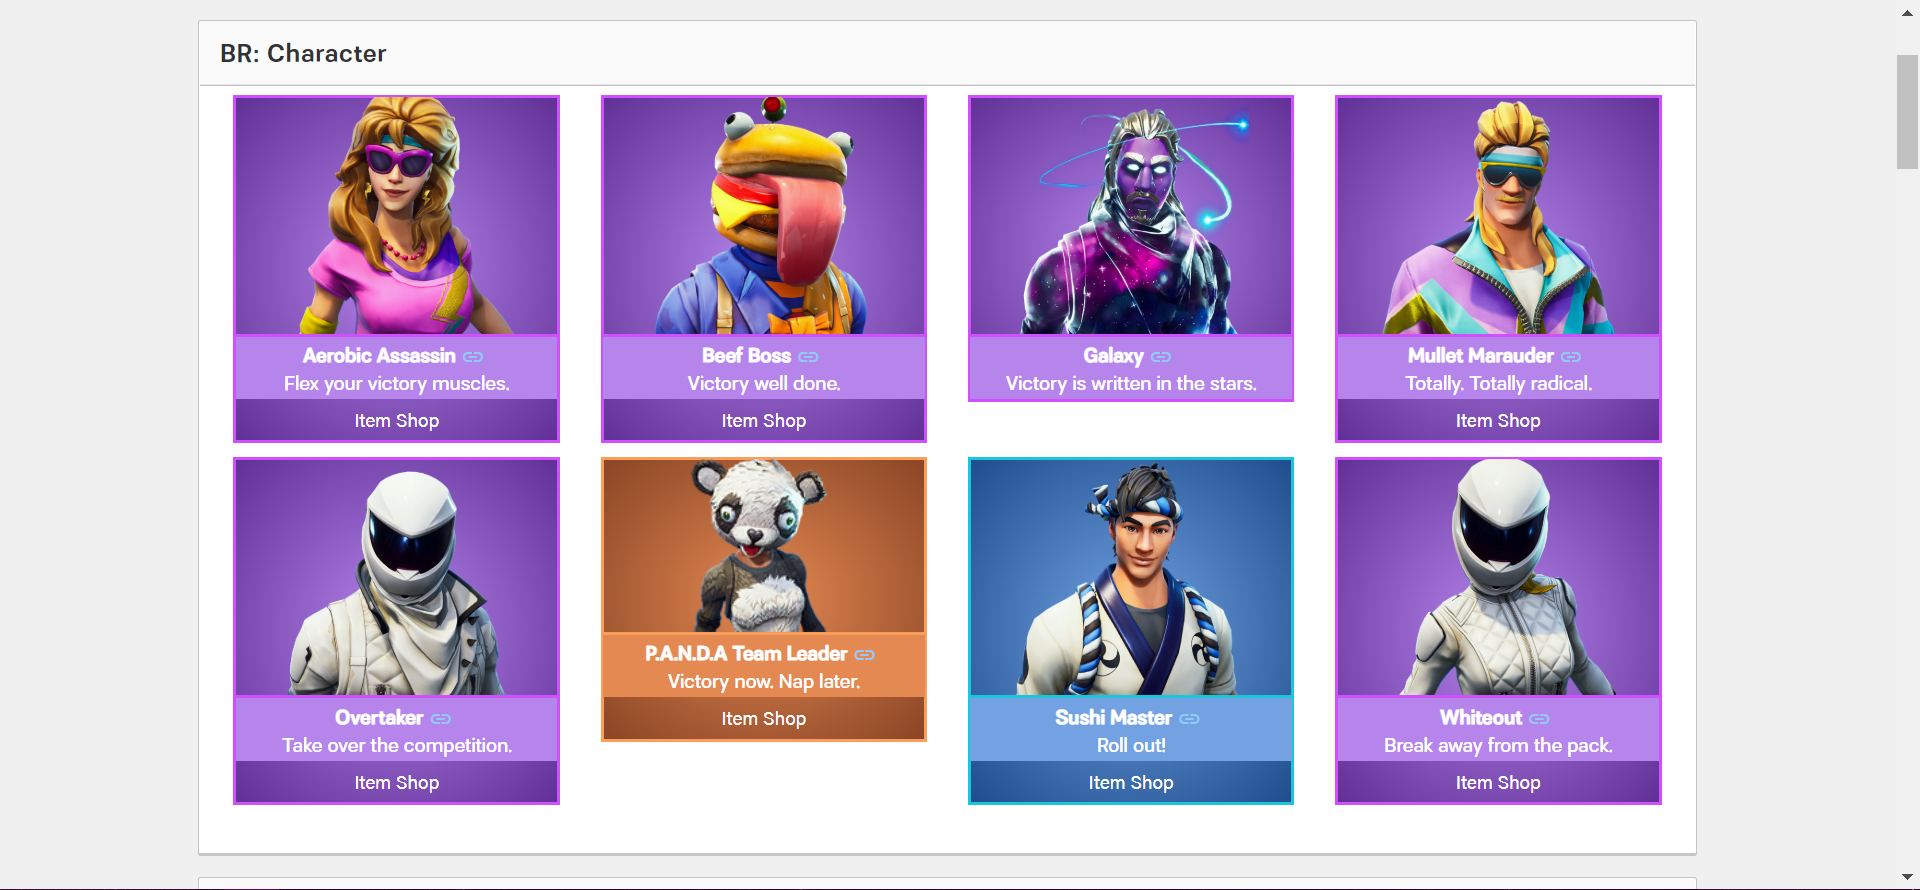 Upcoming Galaxy Skin May Be Included In A Starter Pack Fortnite Intel